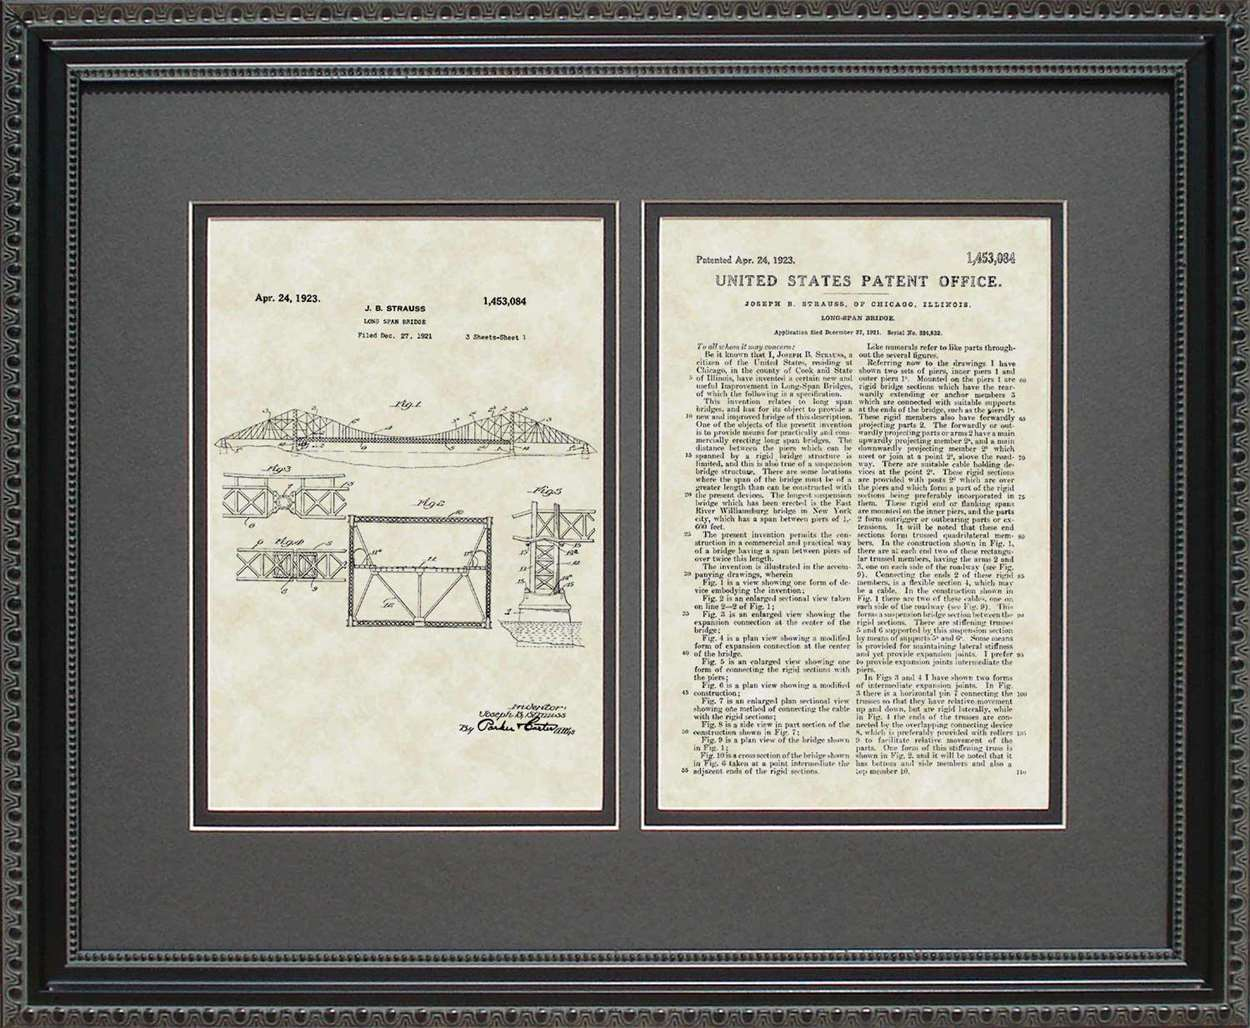 Long Span/Golden Gate Bridge Patent, Art & Copy, Strauss, 1923, 16x20